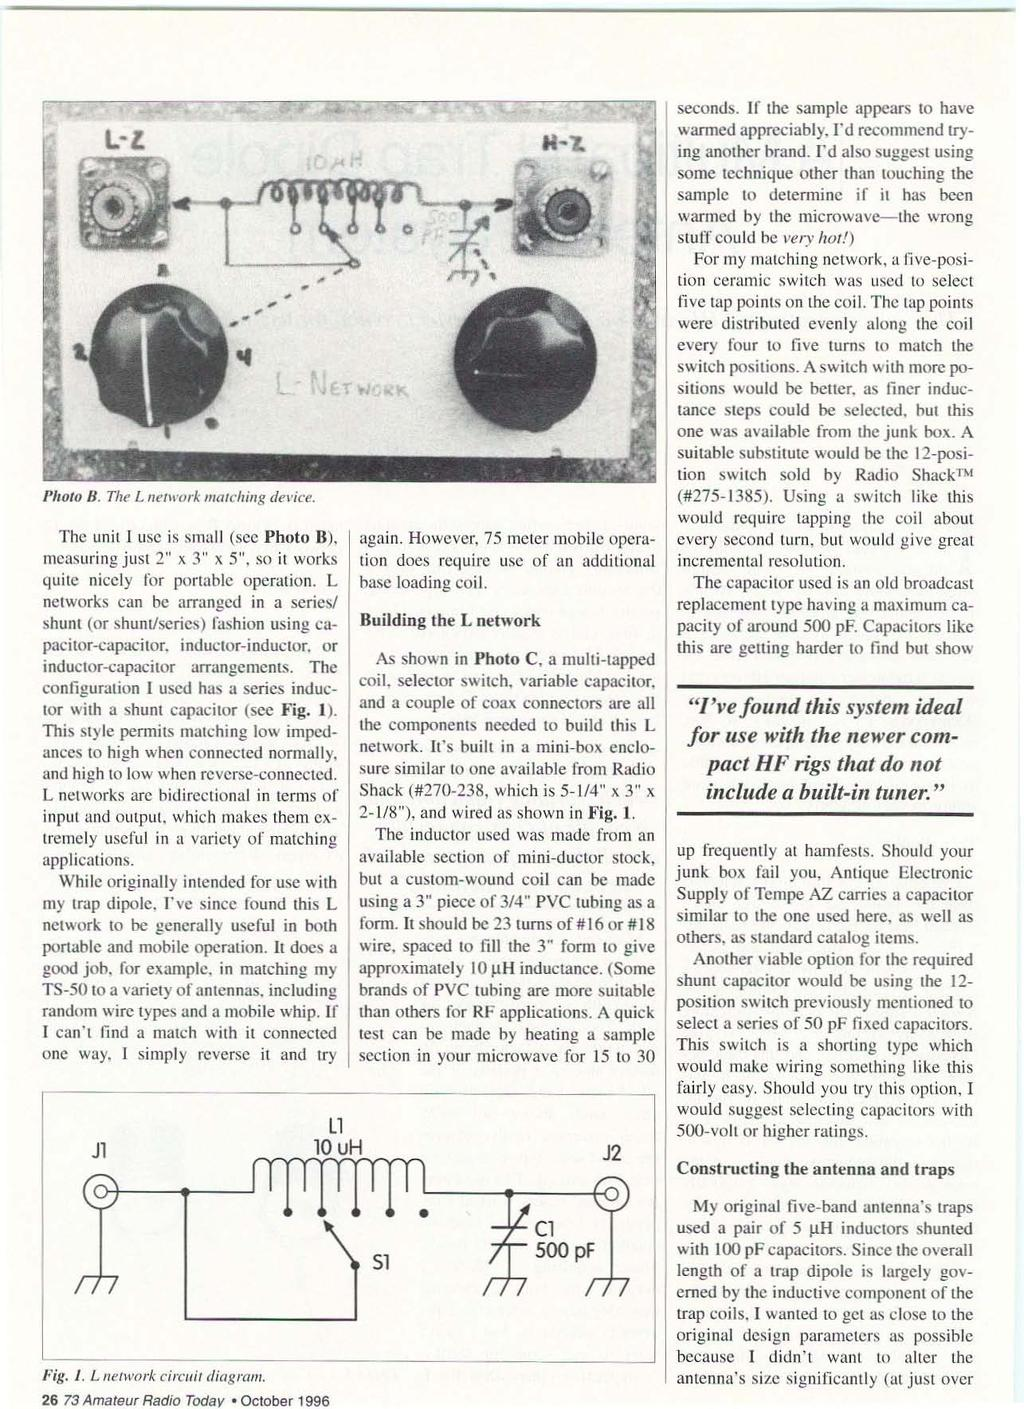 Qrp Low Power Fun Including Ham Radio October 1996 Issue 433 Circuit Trainer For Professionals Logic Gate Trainerii Jl L Z Of Photo I The